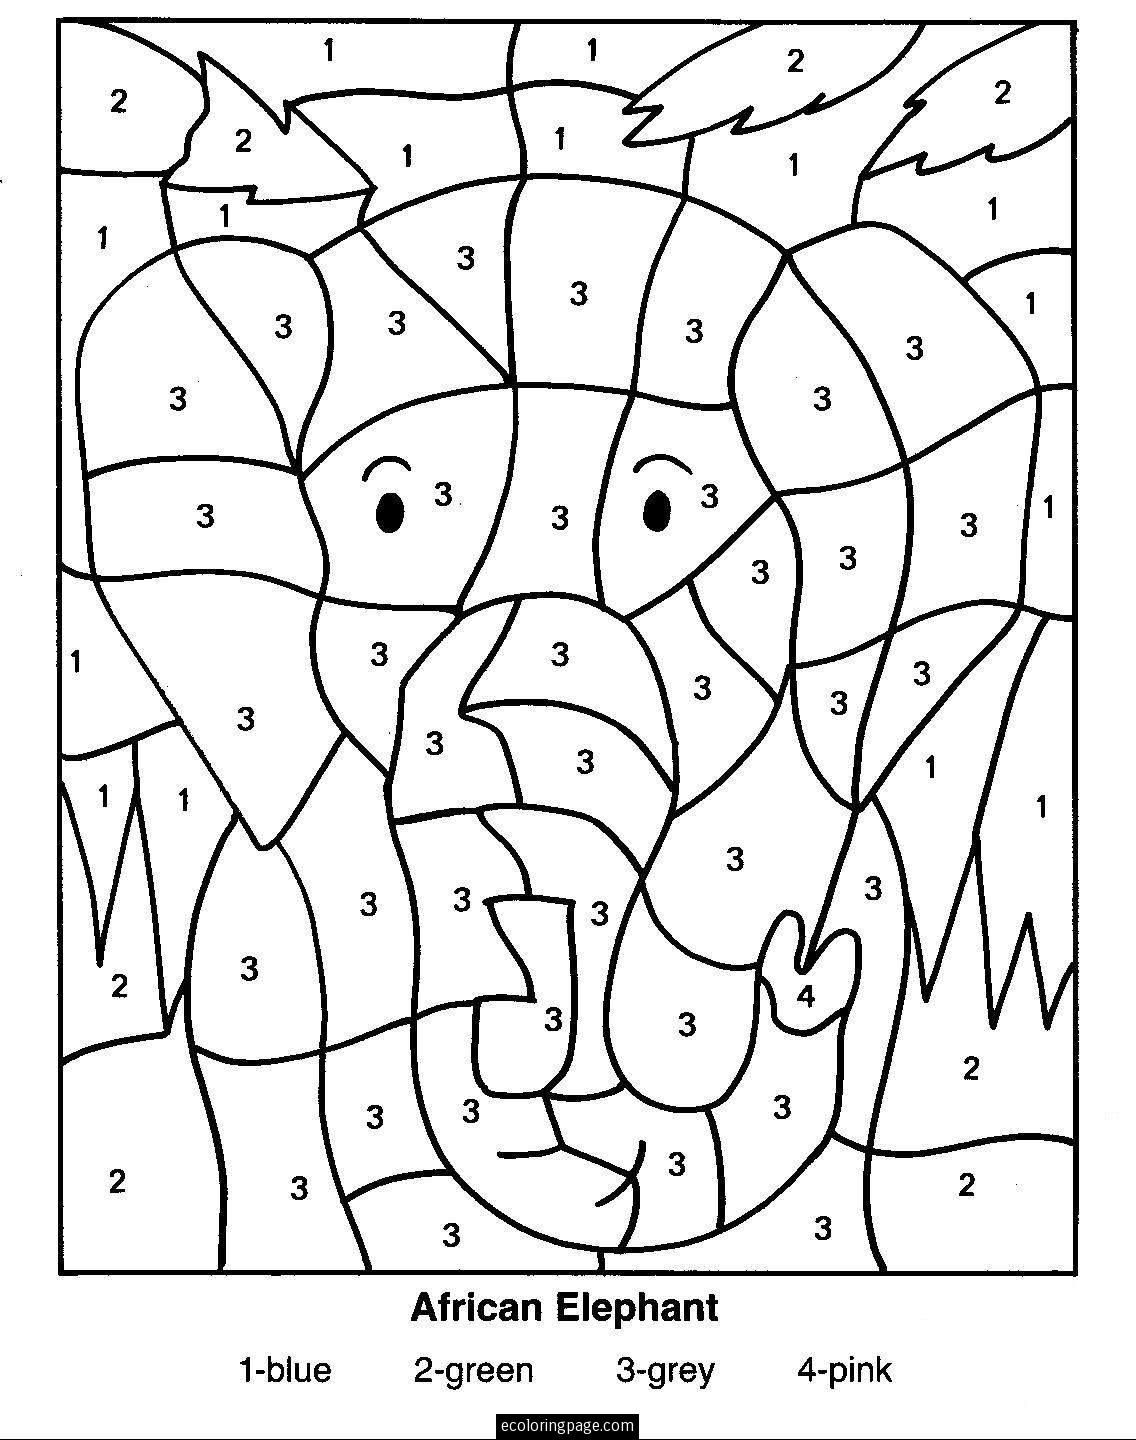 Coloring pages using addition - Color By Numbers Elephant Coloring Pages For Kids